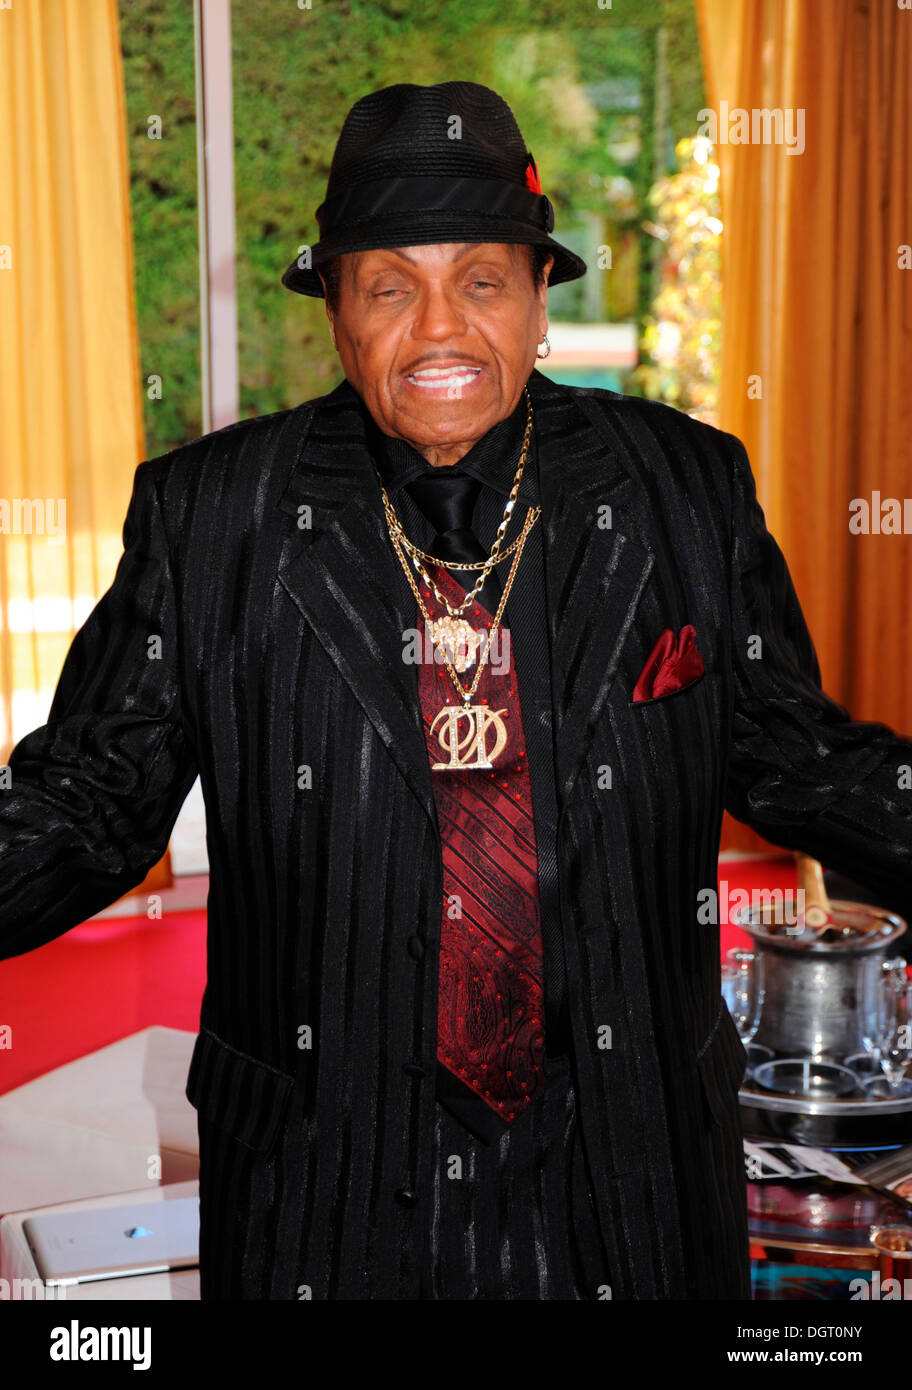 Joe Jackson arrives at Villa Oxygen during the 64th International Film Festival of Cannes, 2011, Cannes, France, Europe - Stock Image